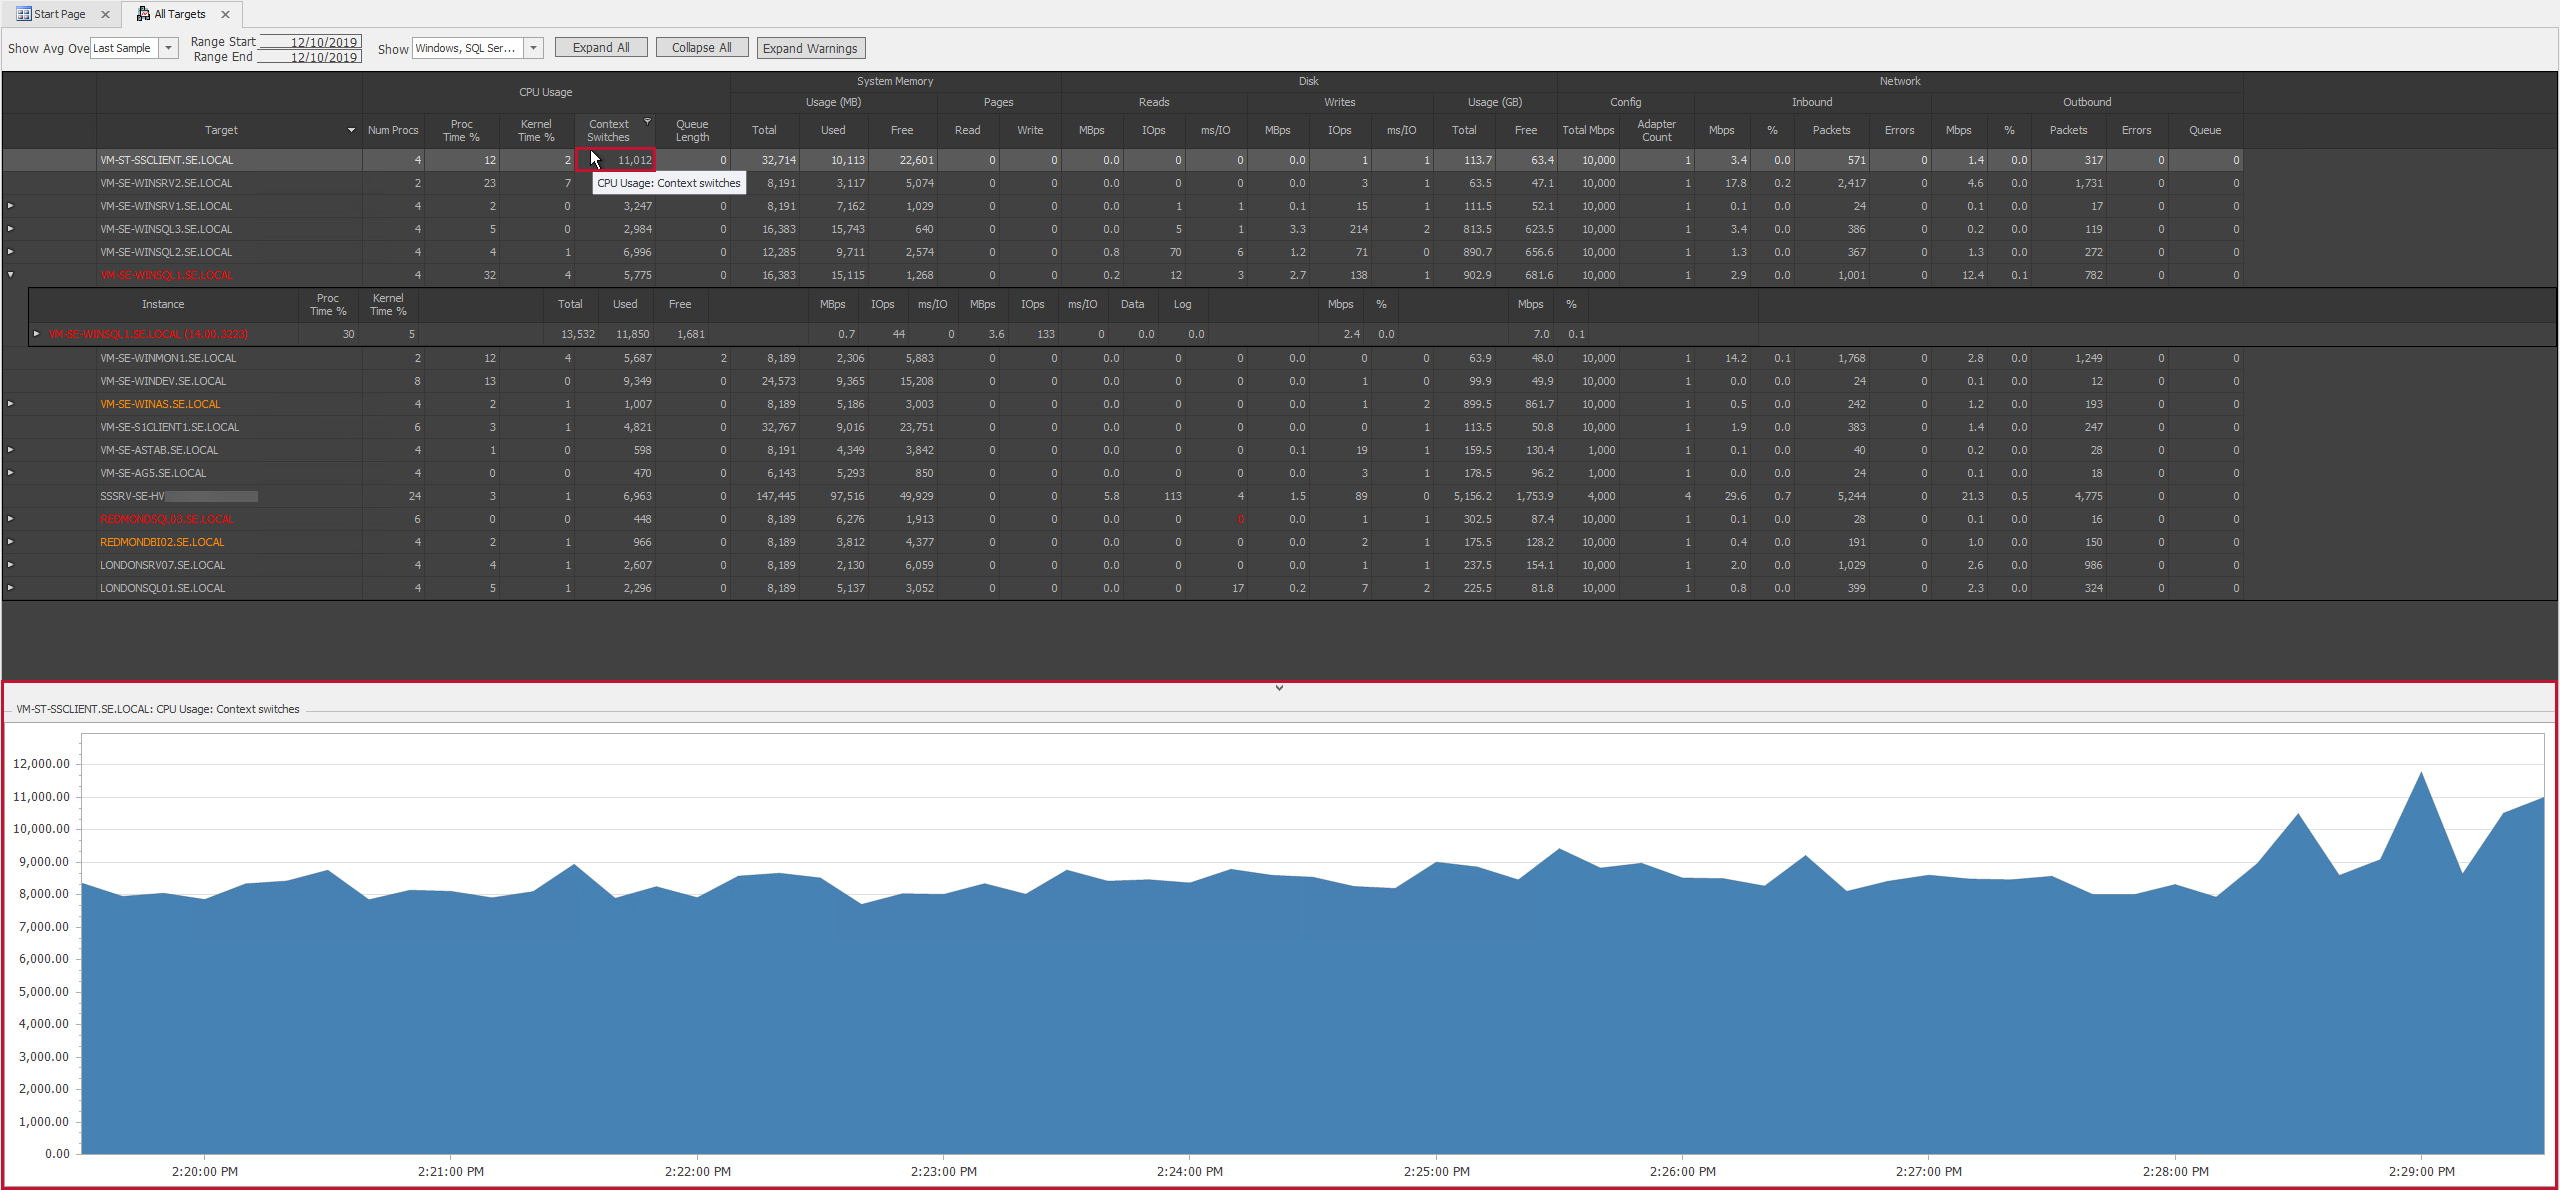 SentryOne Performance Overview select an instance in Grid view to see the corresponding graph